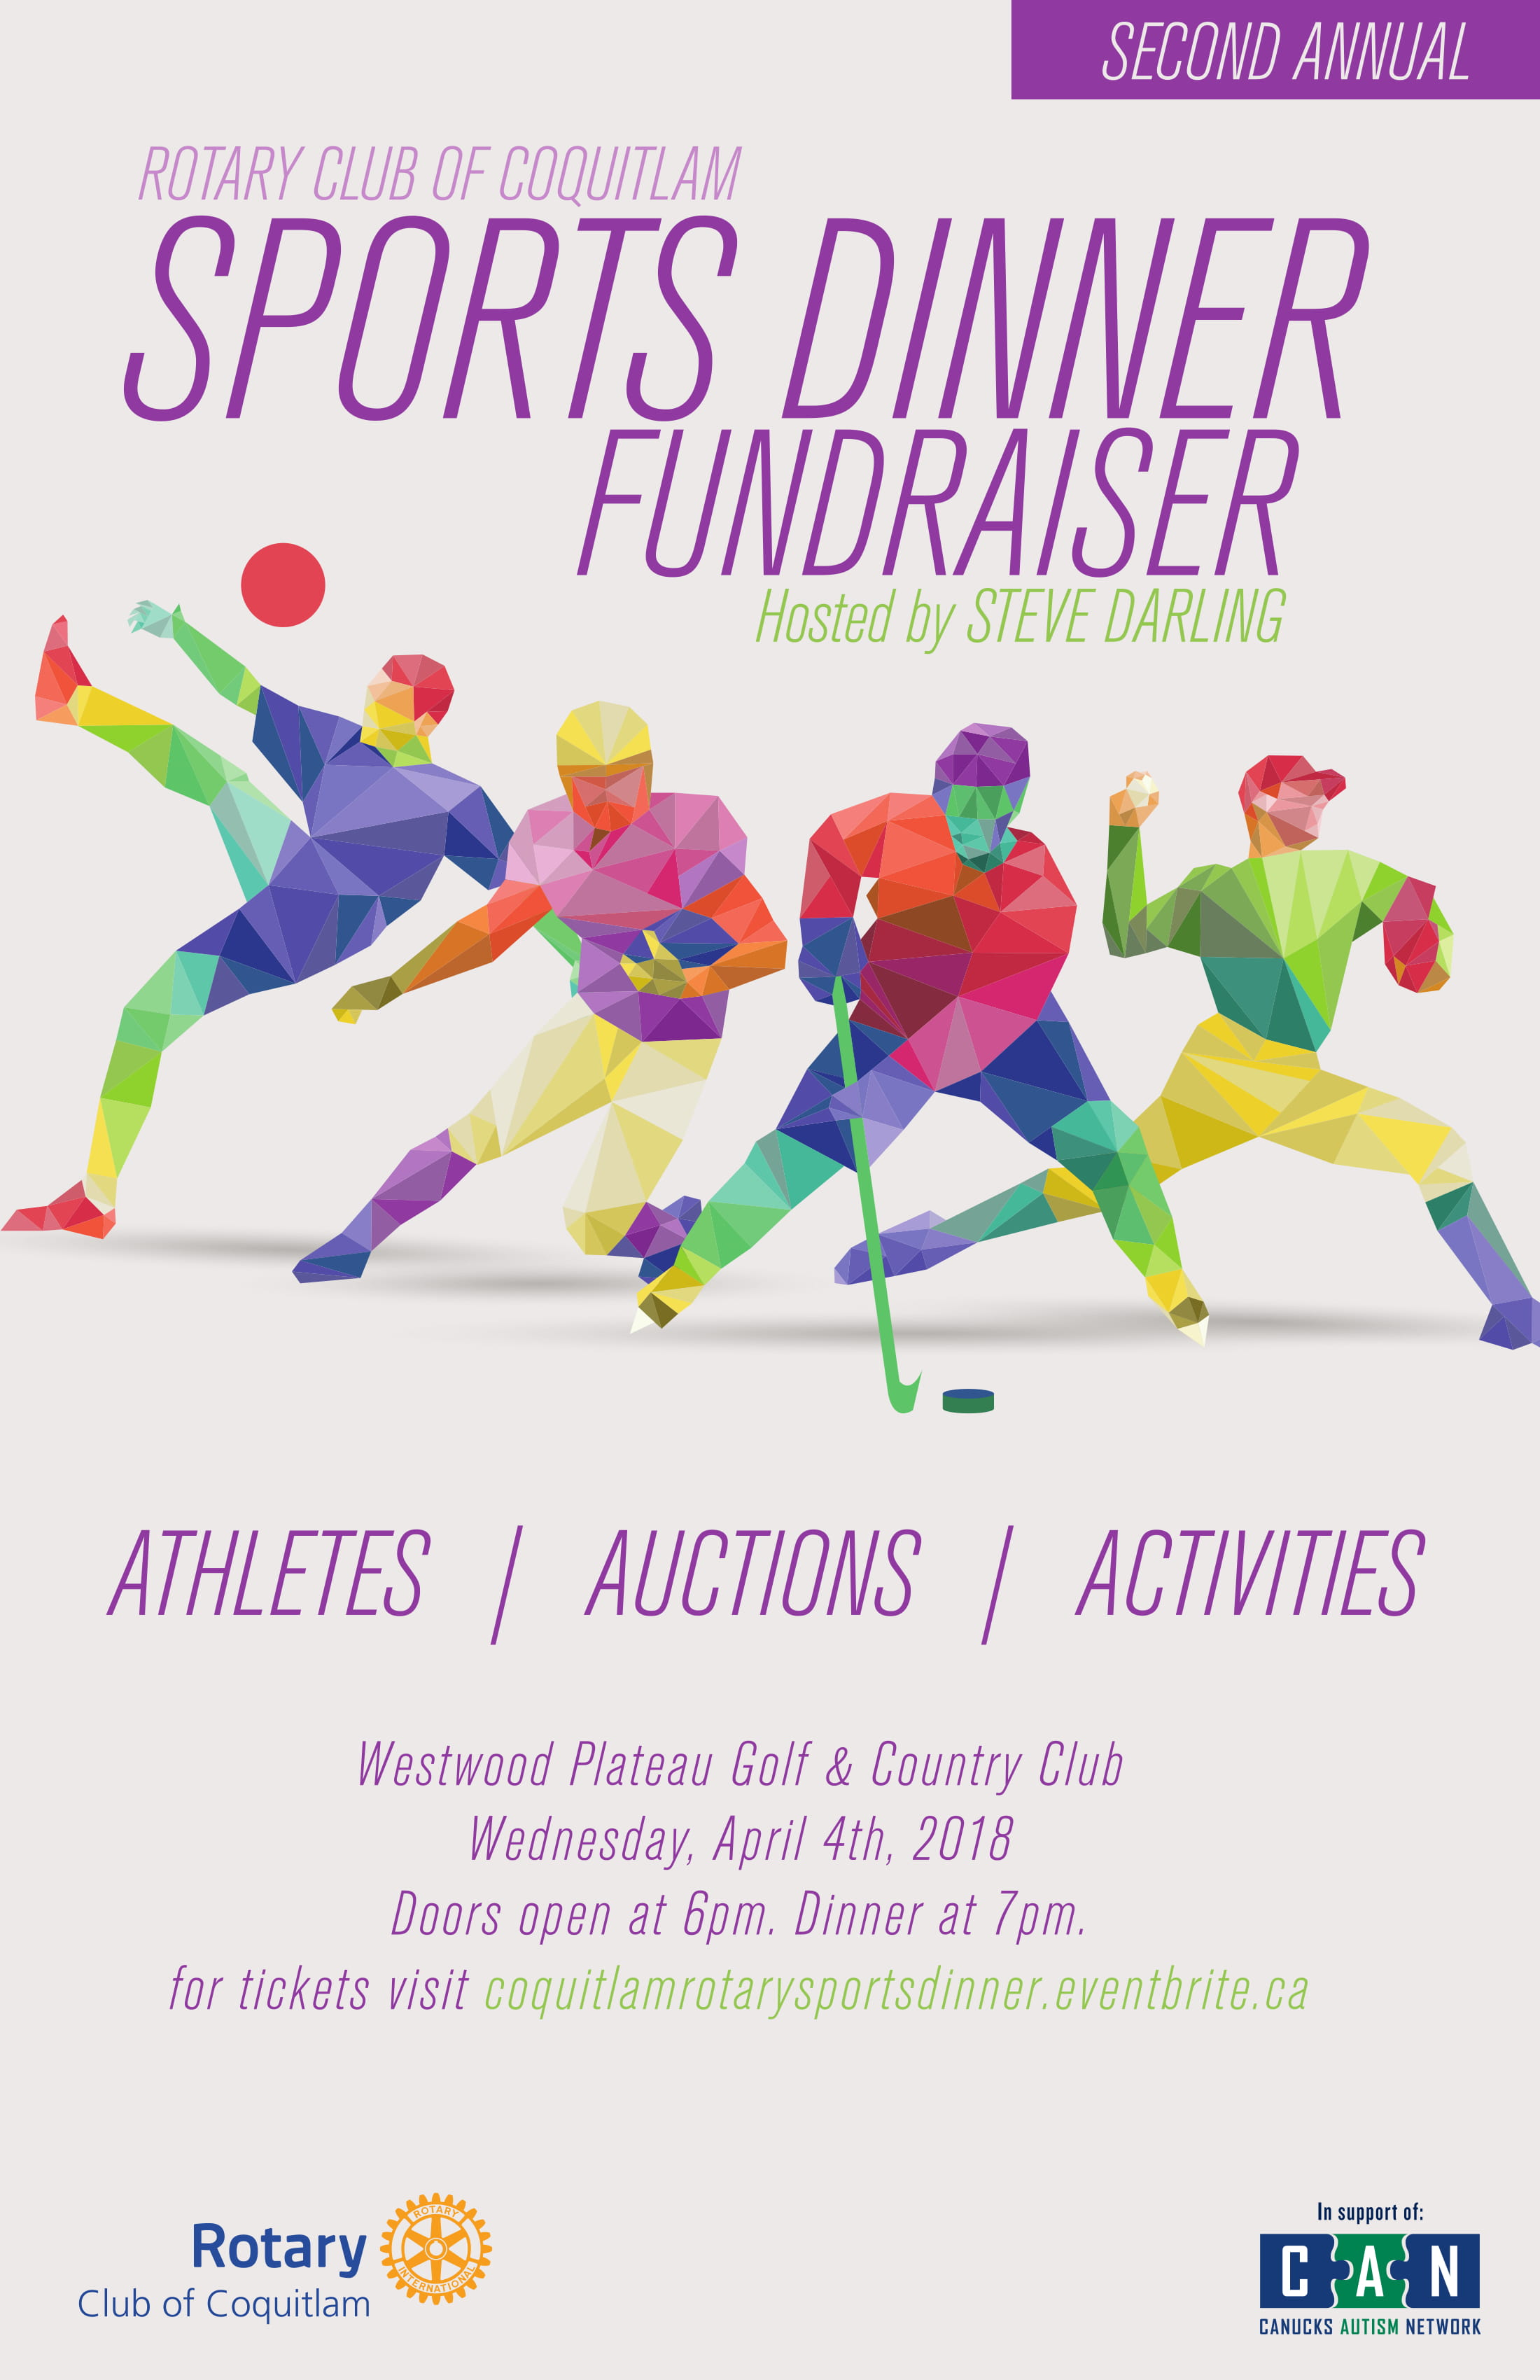 A promotional poster for the Rotary Club of Coquitlam's Sports Dinner Fundraiser on April 4, 2018.